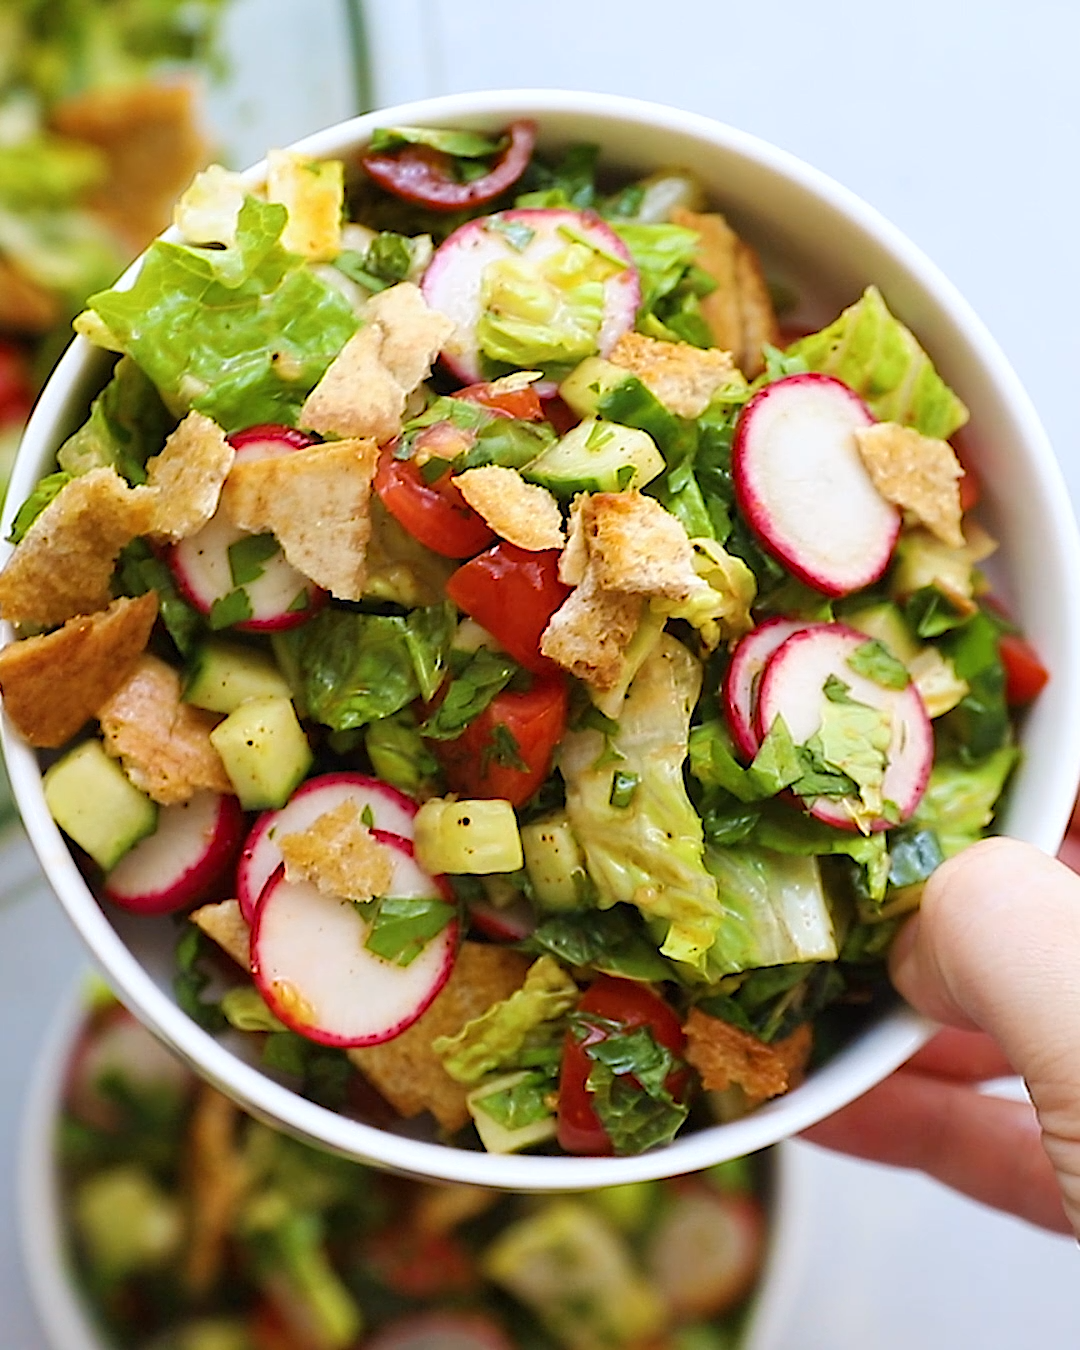 This delicious Middle Eastern fattoush salad has vegetables, fresh herbs, crispy pita bread, and a sumac dressing. Great as an appetizer or served with protein for a meal.